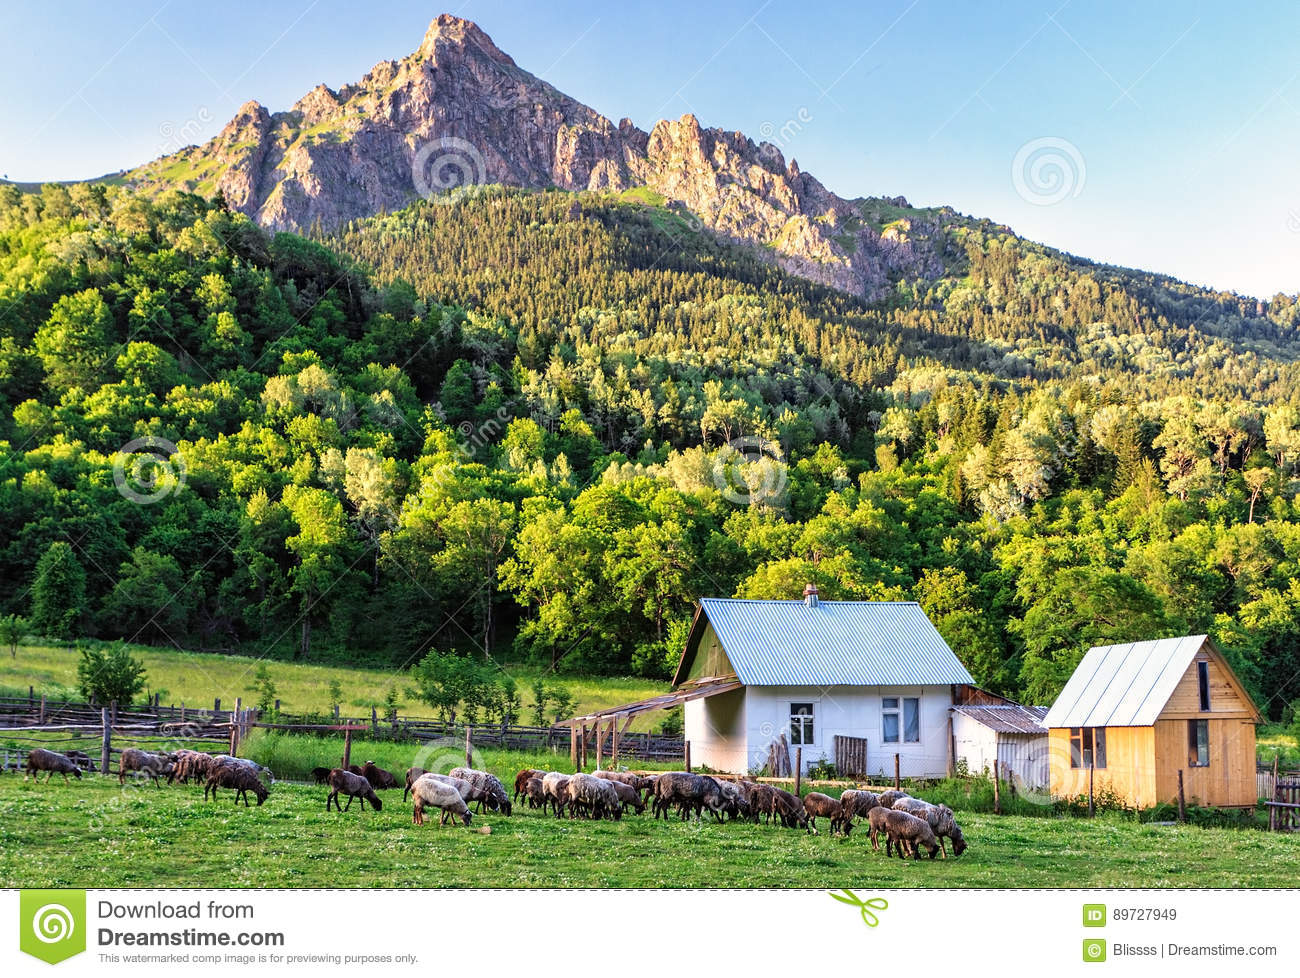 Scenic Rustic Landscape Of Peaceful Countryside Life With Sheep